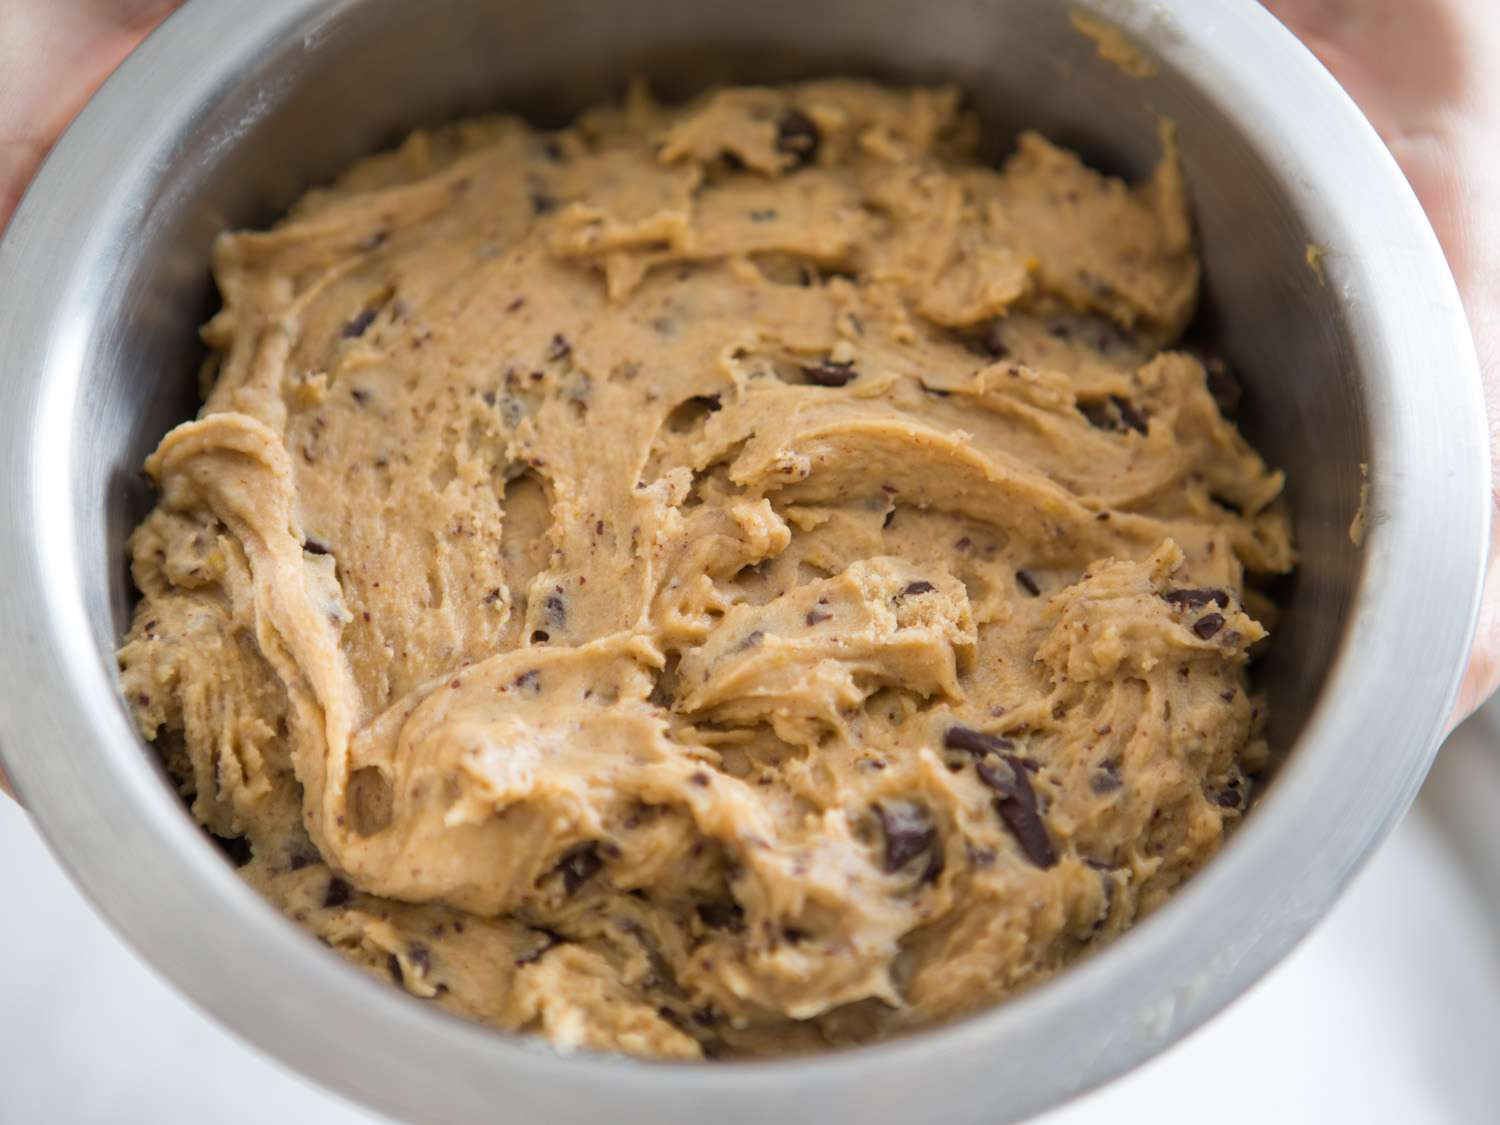 Chocolate chip cookie dough in a metal bowl going into the fridge to rest overnight before baking.